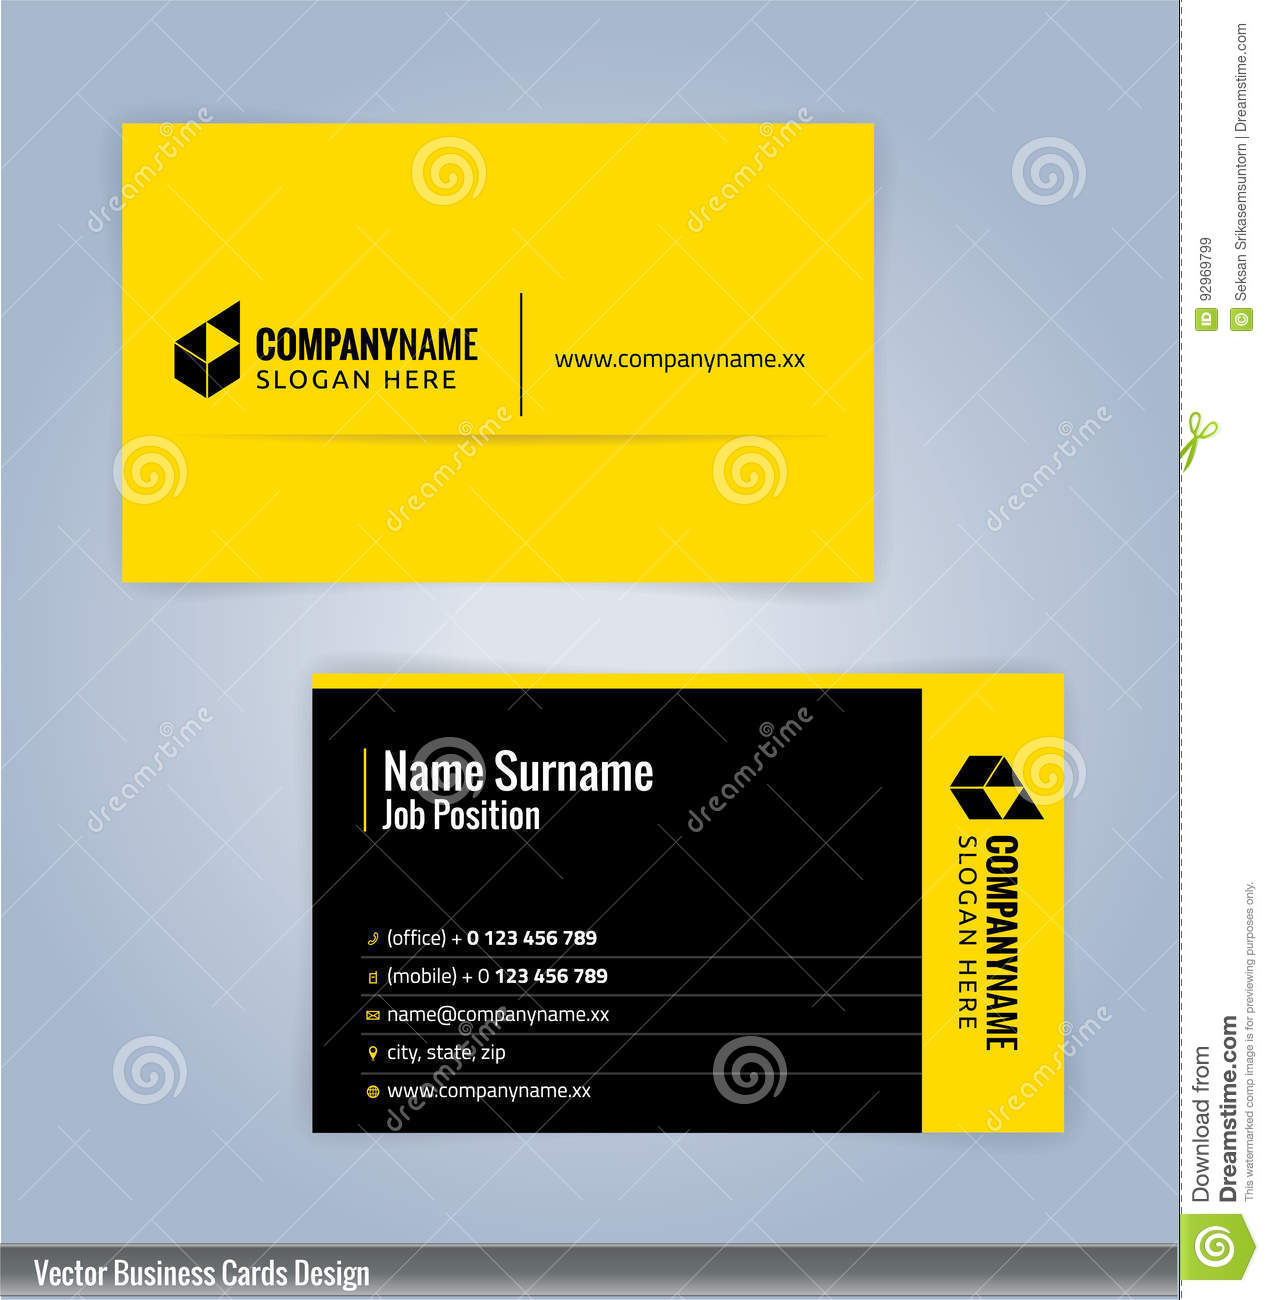 Yellow and black modern business card template stock vector yellow and black modern business card template royalty free vector alramifo Image collections